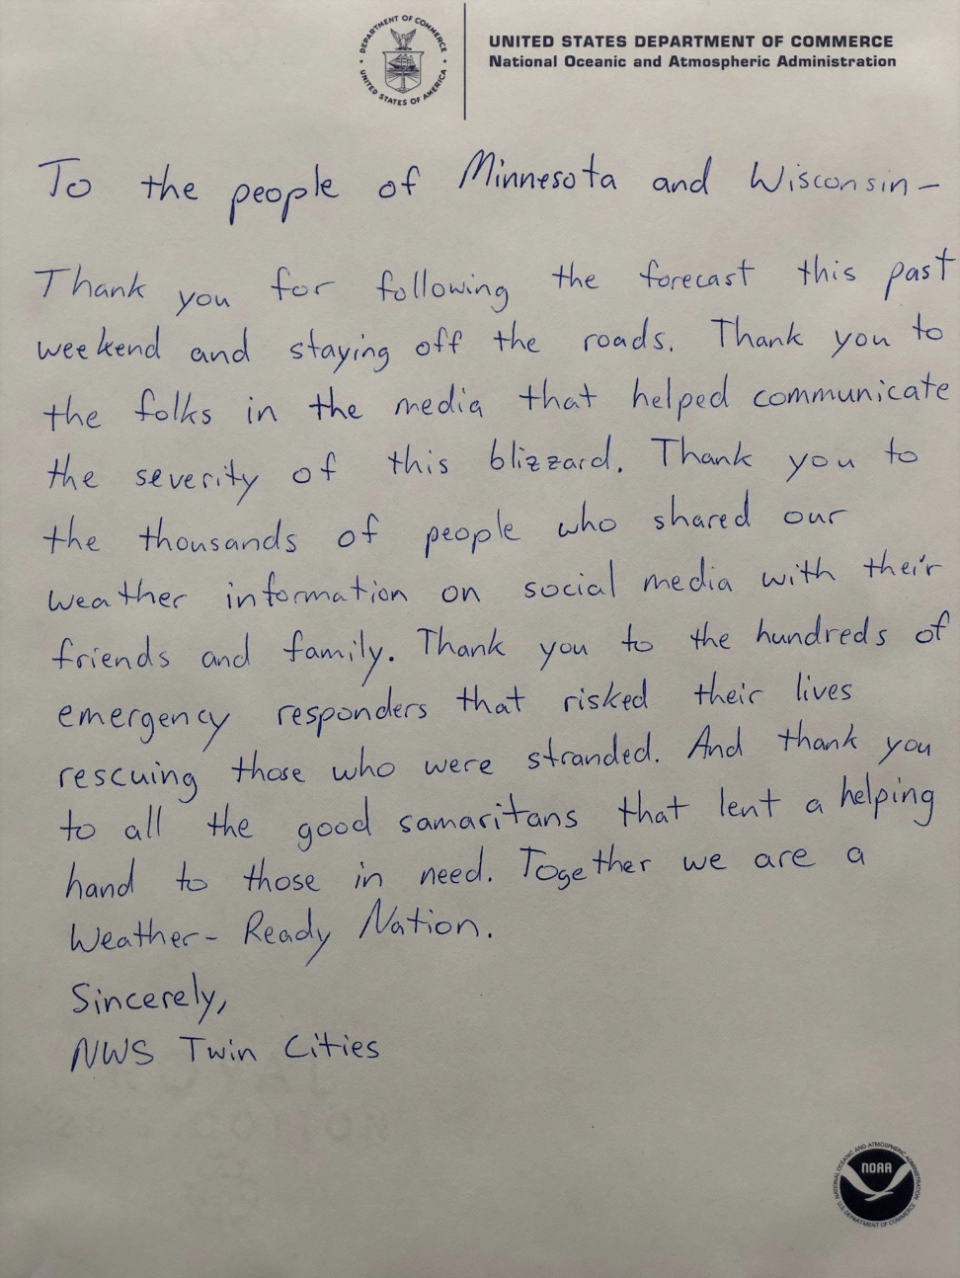 The National Weather Service thanked people in Minnesota and Wisconsin. (Photo: Facebook)